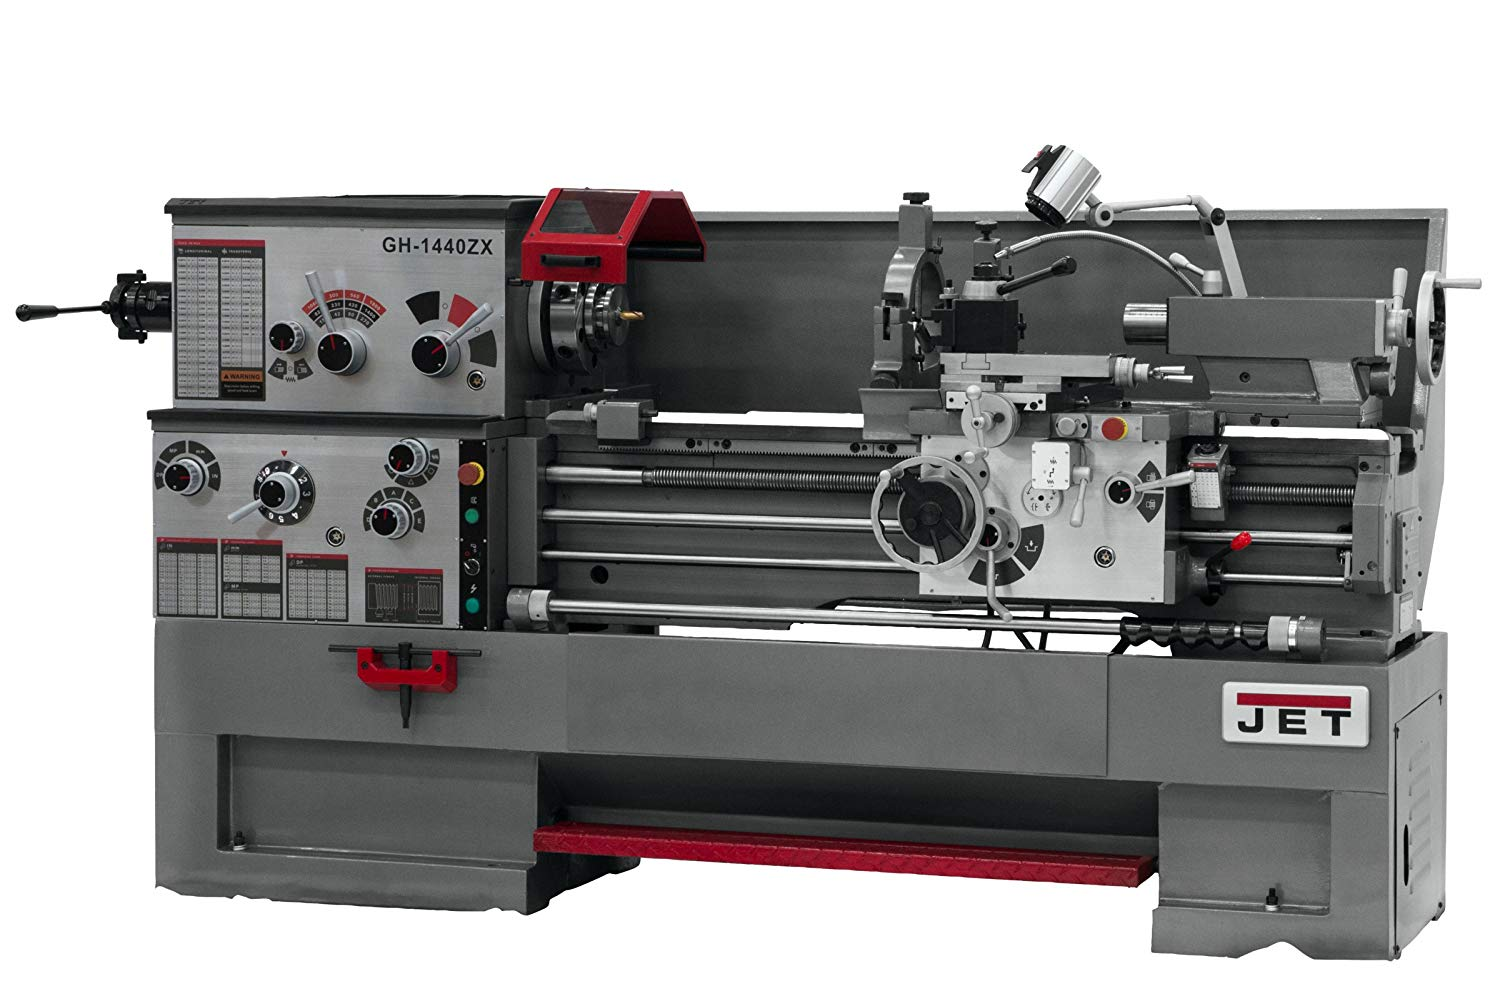 JET GH-1440ZX-TAK Lathe with Taper Attachment Installed